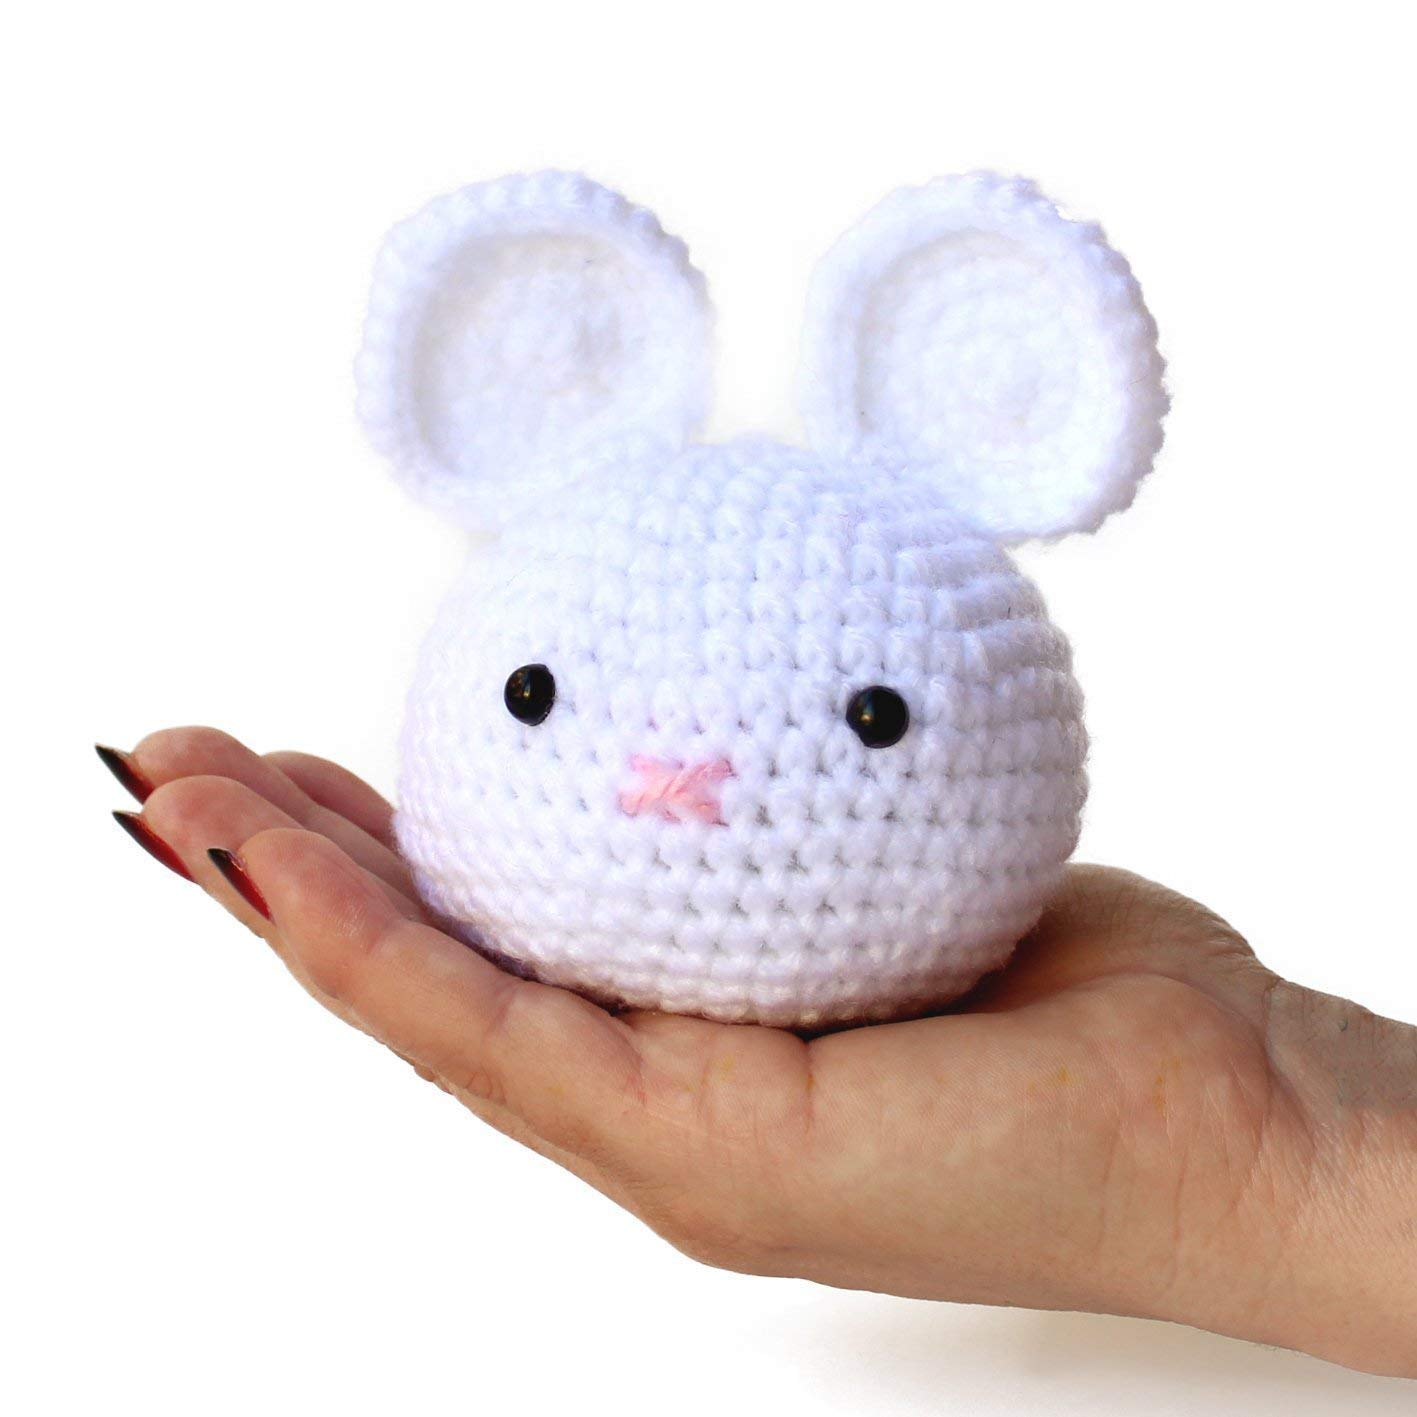 Crochet mouse couple pattern - Amigurumi Today | 1417x1417